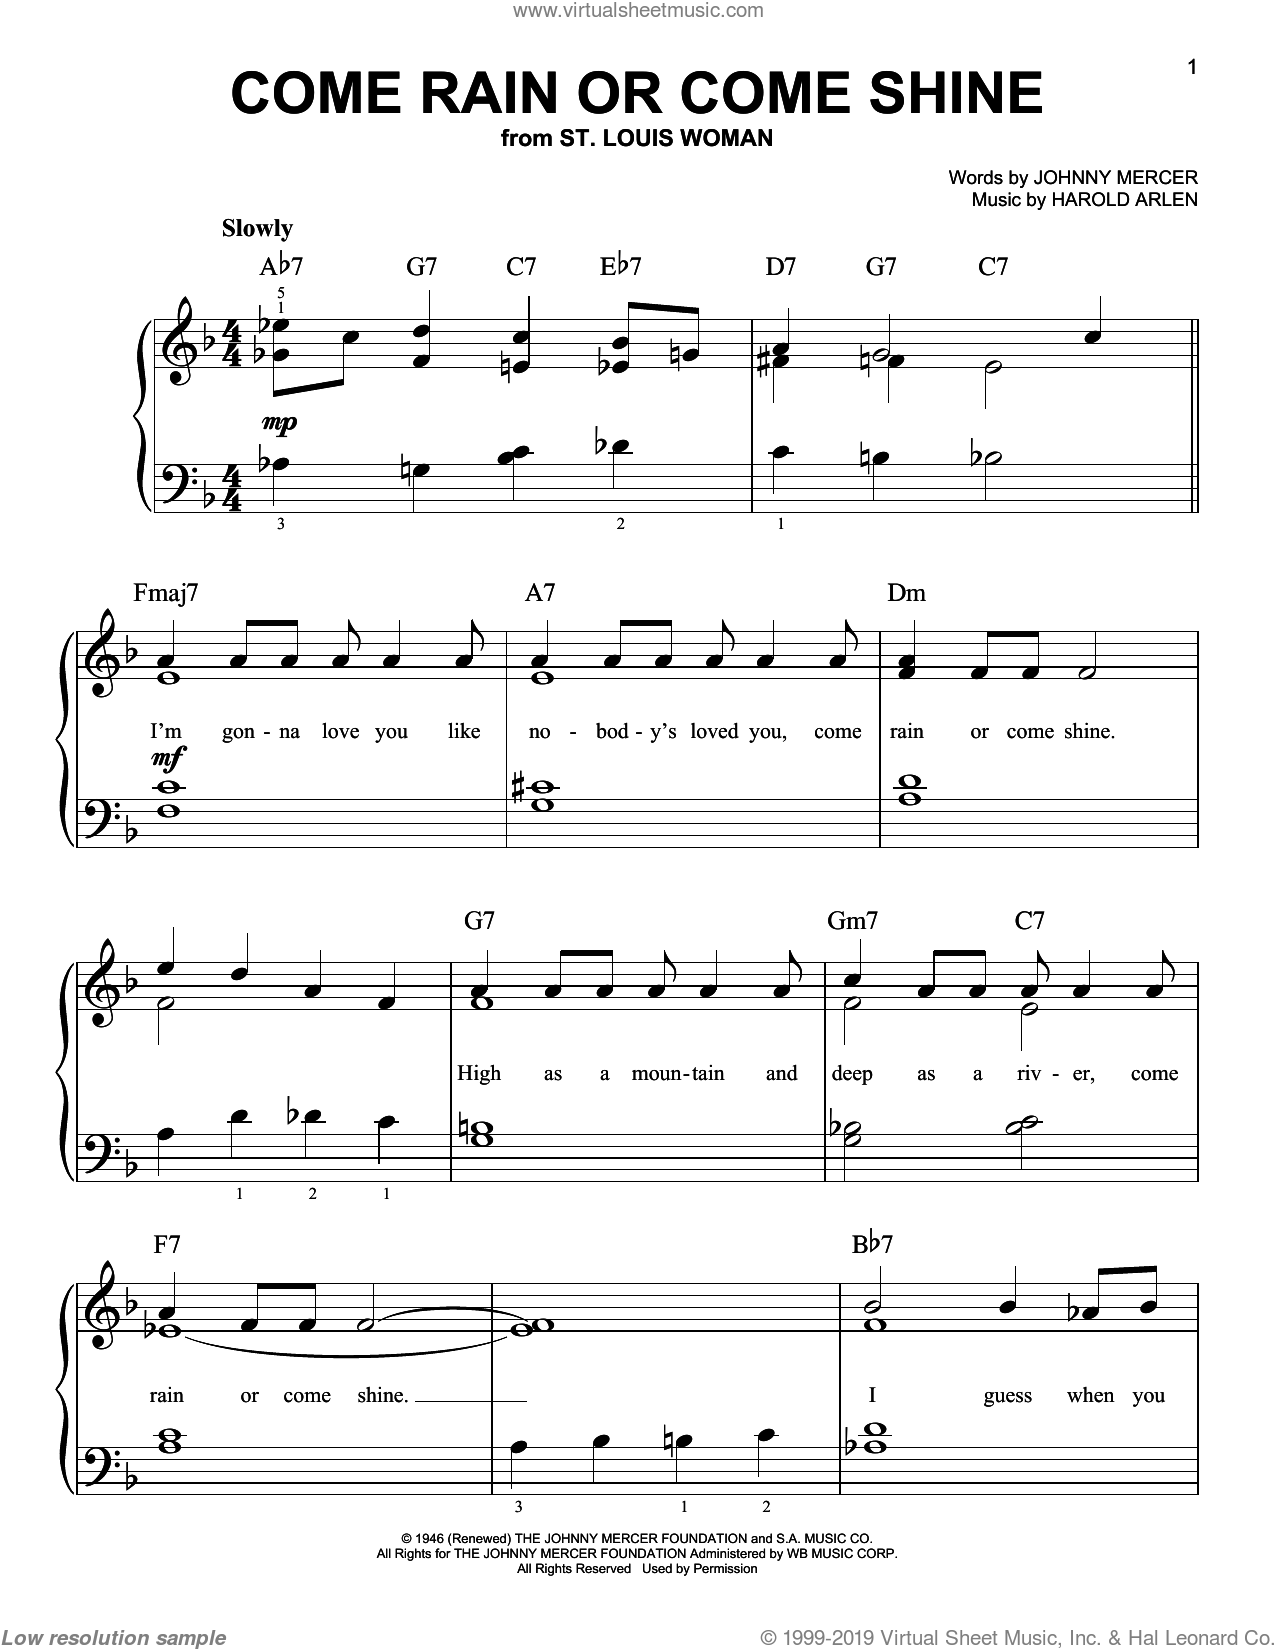 Come Rain Or Come Shine sheet music for piano solo by Johnny Mercer